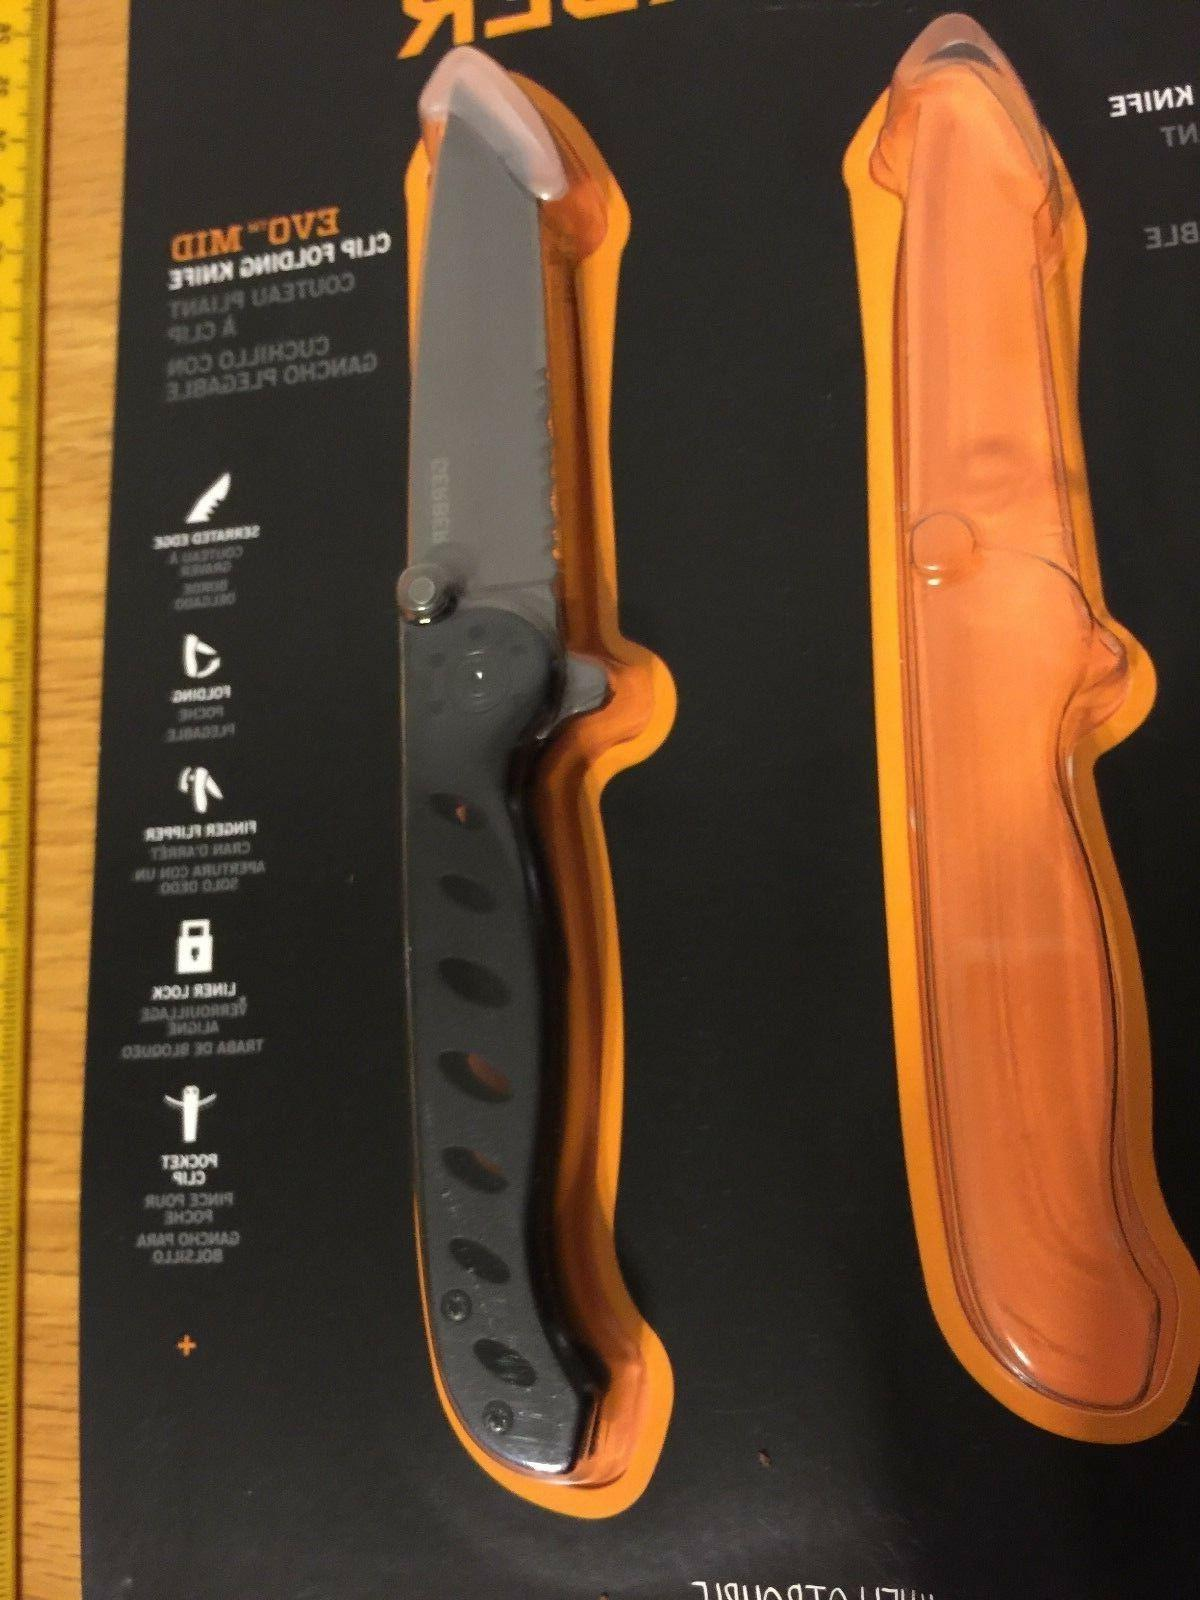 Lot 2 knives, EVO MID